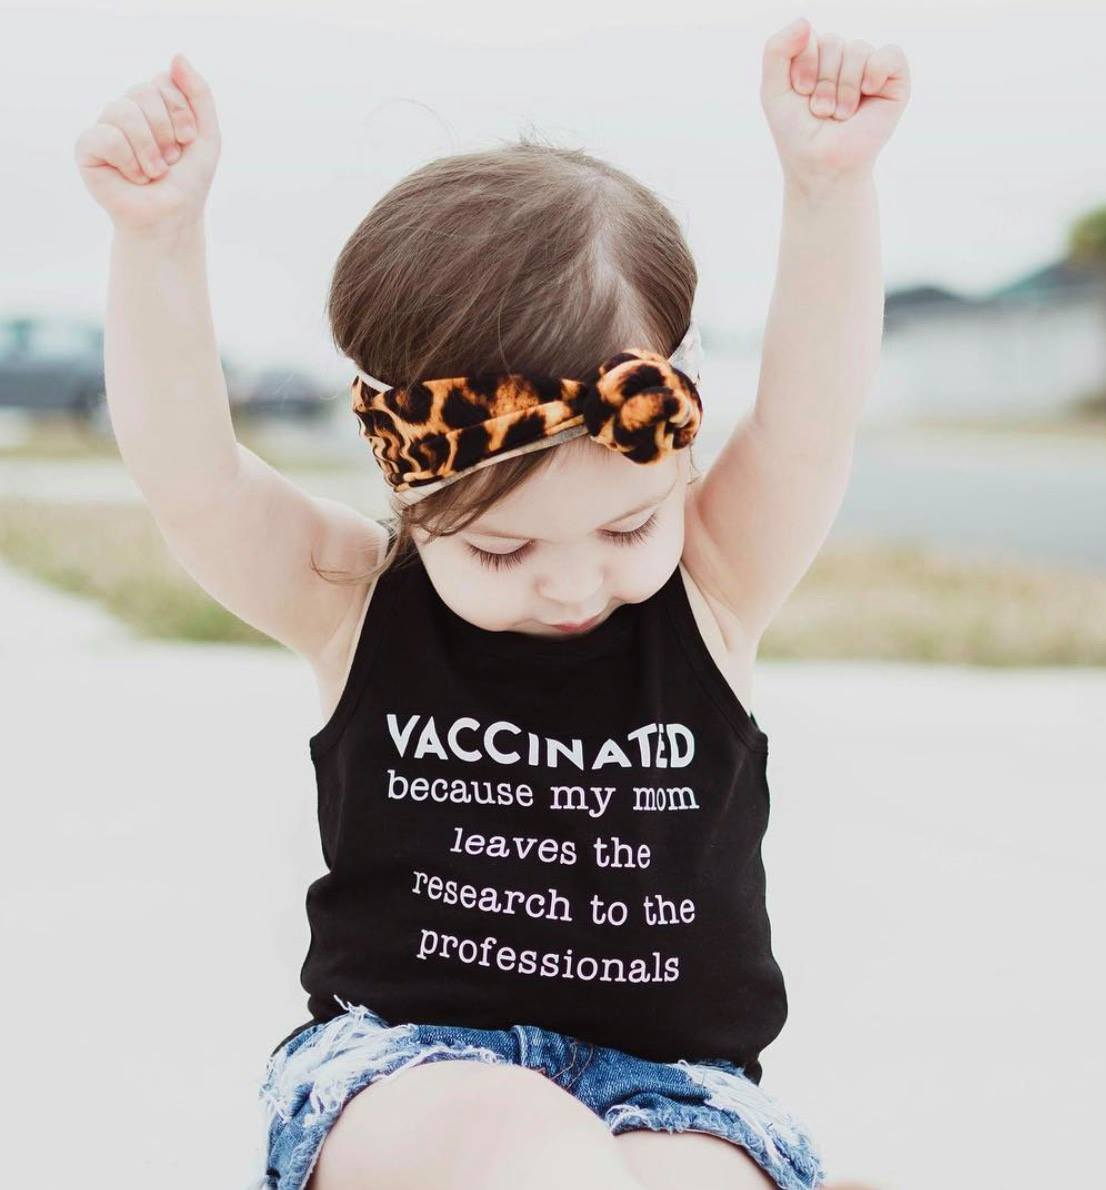 Top 10 Pro-Vaccine (or Anti Anti-Vaxxer) Memes on the